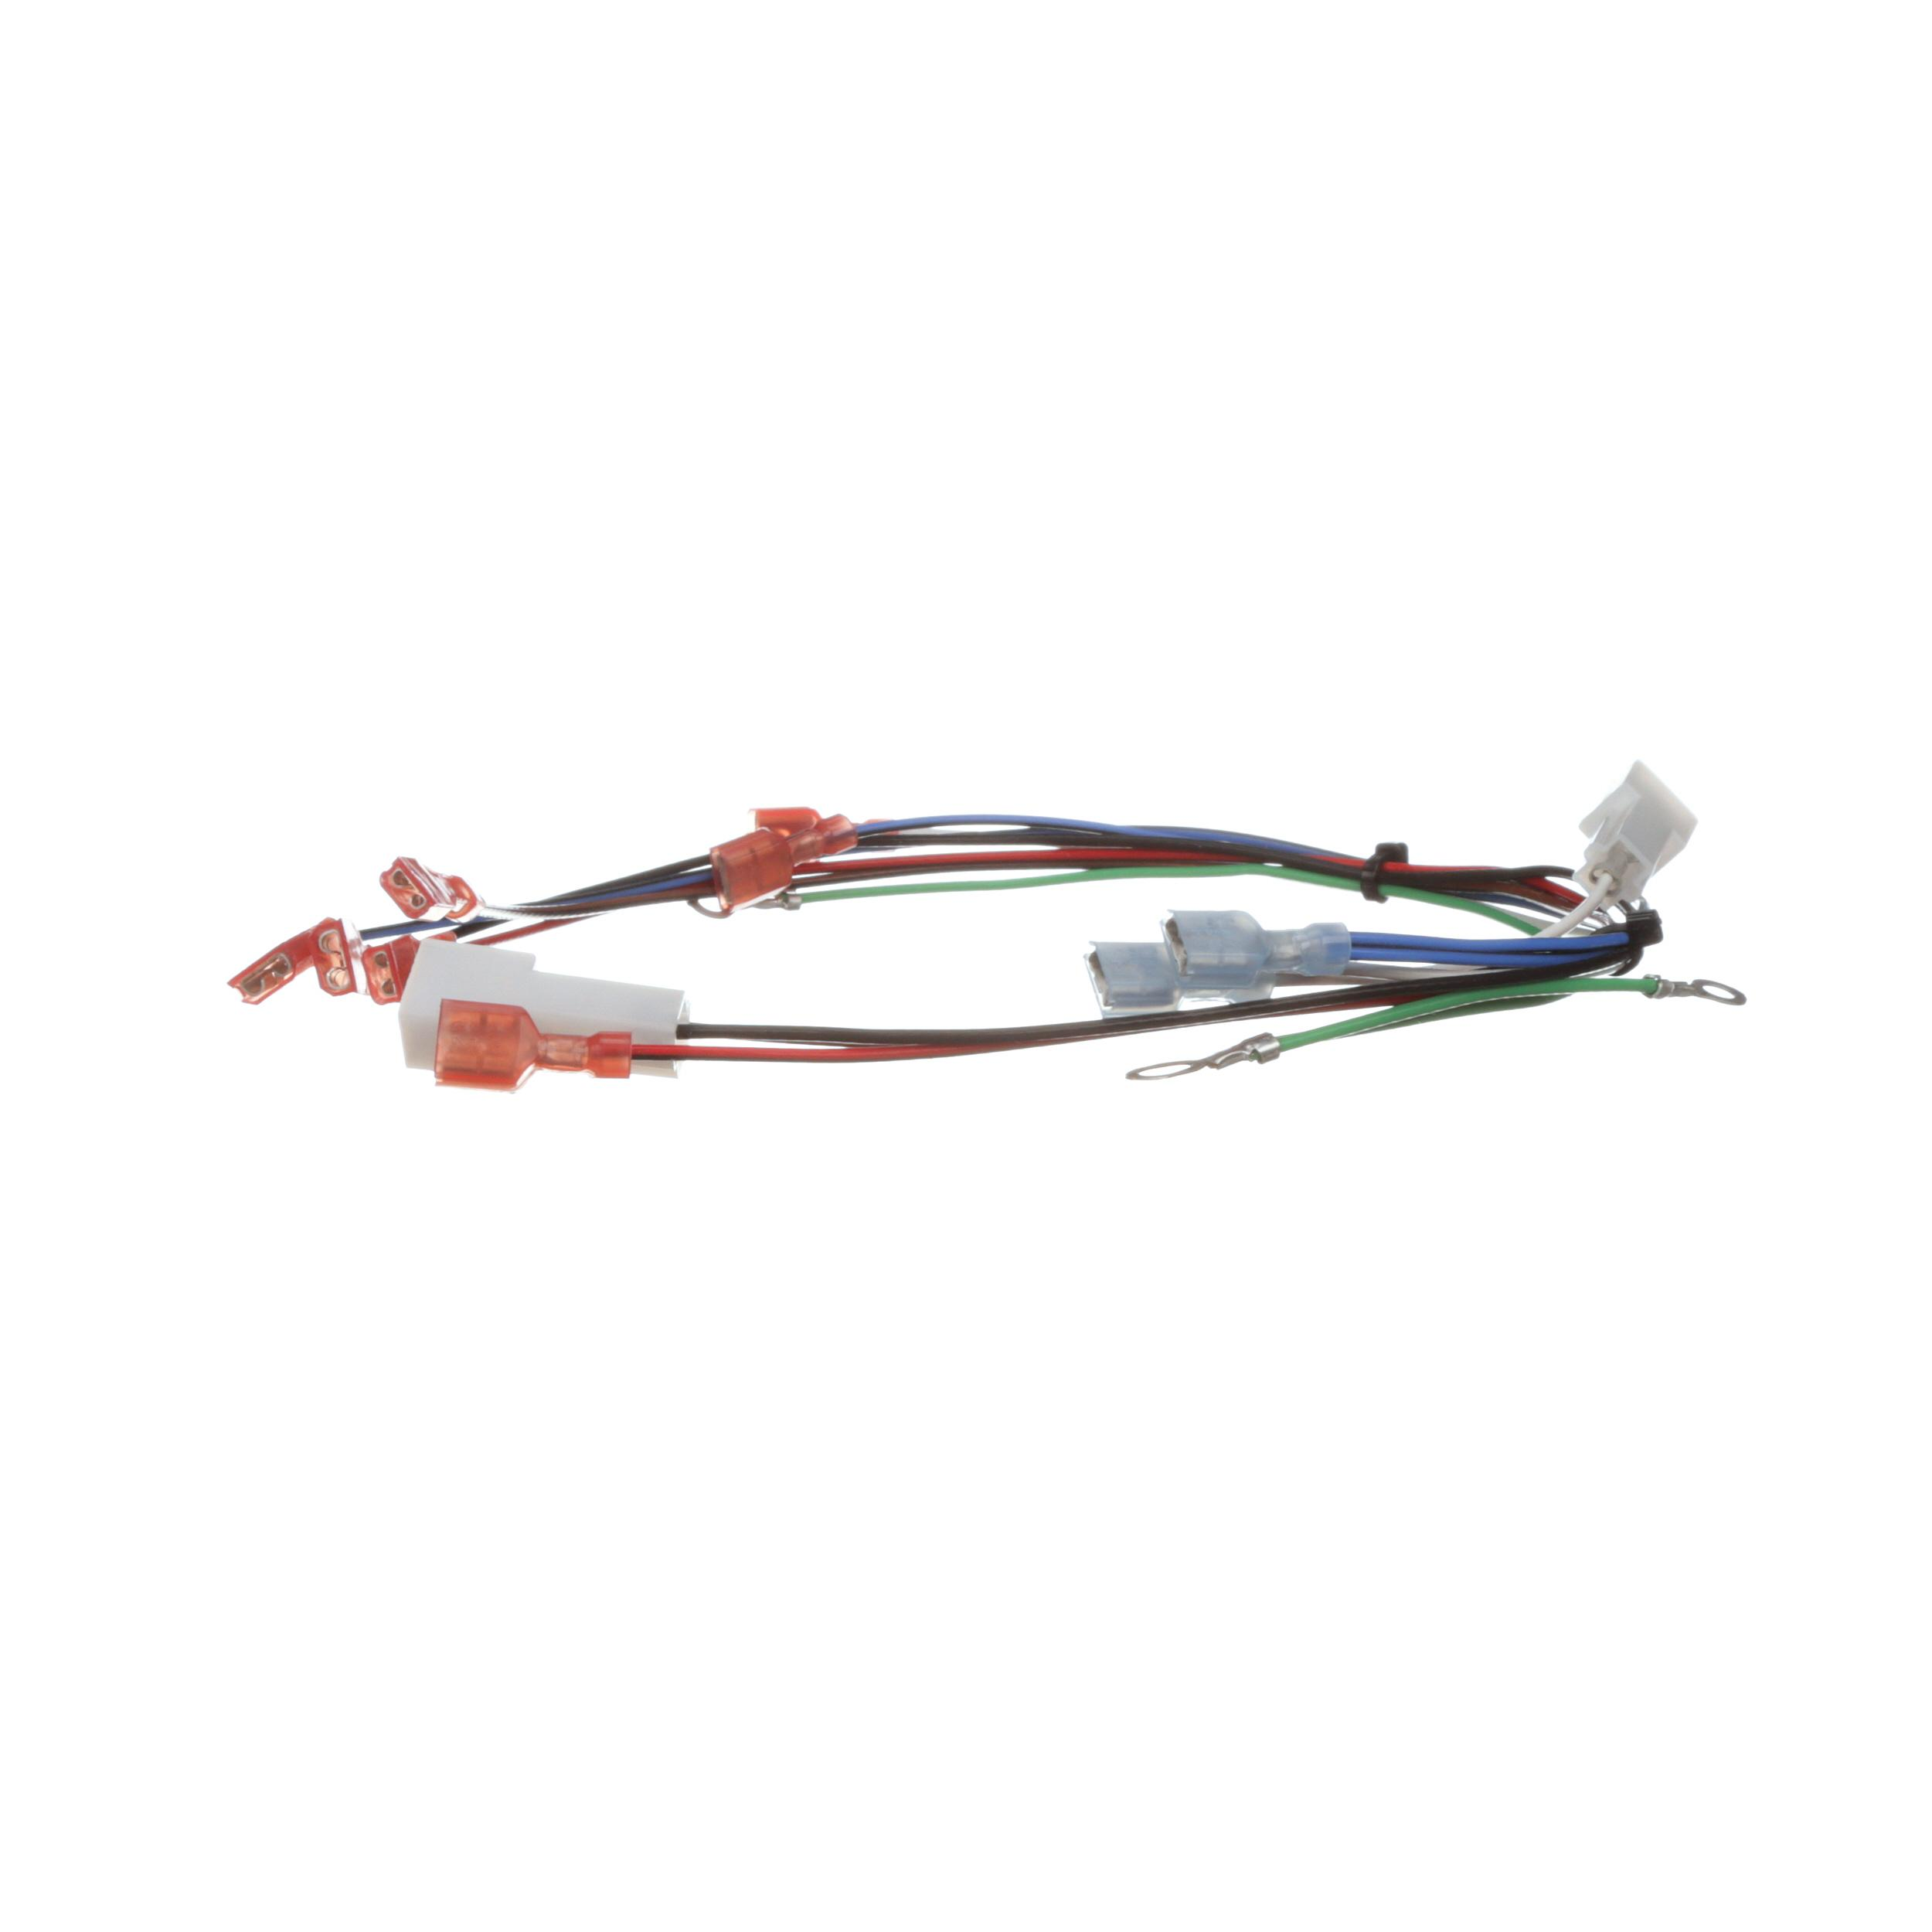 Bunn Wiring Harness Main Ultra Paf